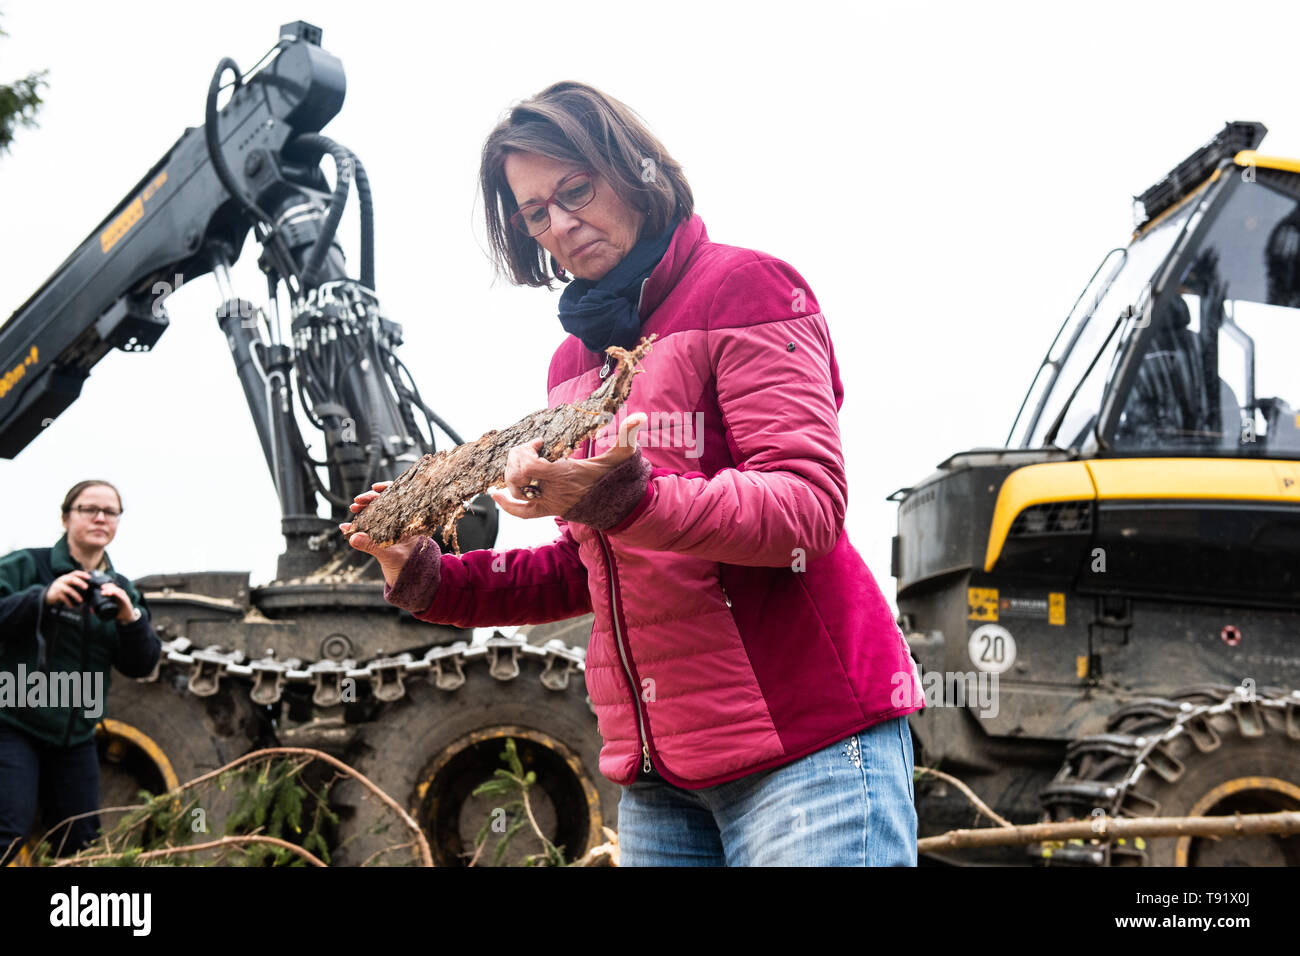 Sankt Ottilien, Germany. 16th May, 2019. Priska Hinz (Bündnis 90/Die Grünen), Minister of the Environment of Hesse, holds a piece of spruce bark in front of a harvester (wood harvester) during a visit to a forest area in the Söhrewald which has been severely affected by the windthrow. After the drought of 2018, trees are weakened and susceptible to bark beetle infestation. Credit: Swen Pförtner/dpa/Alamy Live News - Stock Image